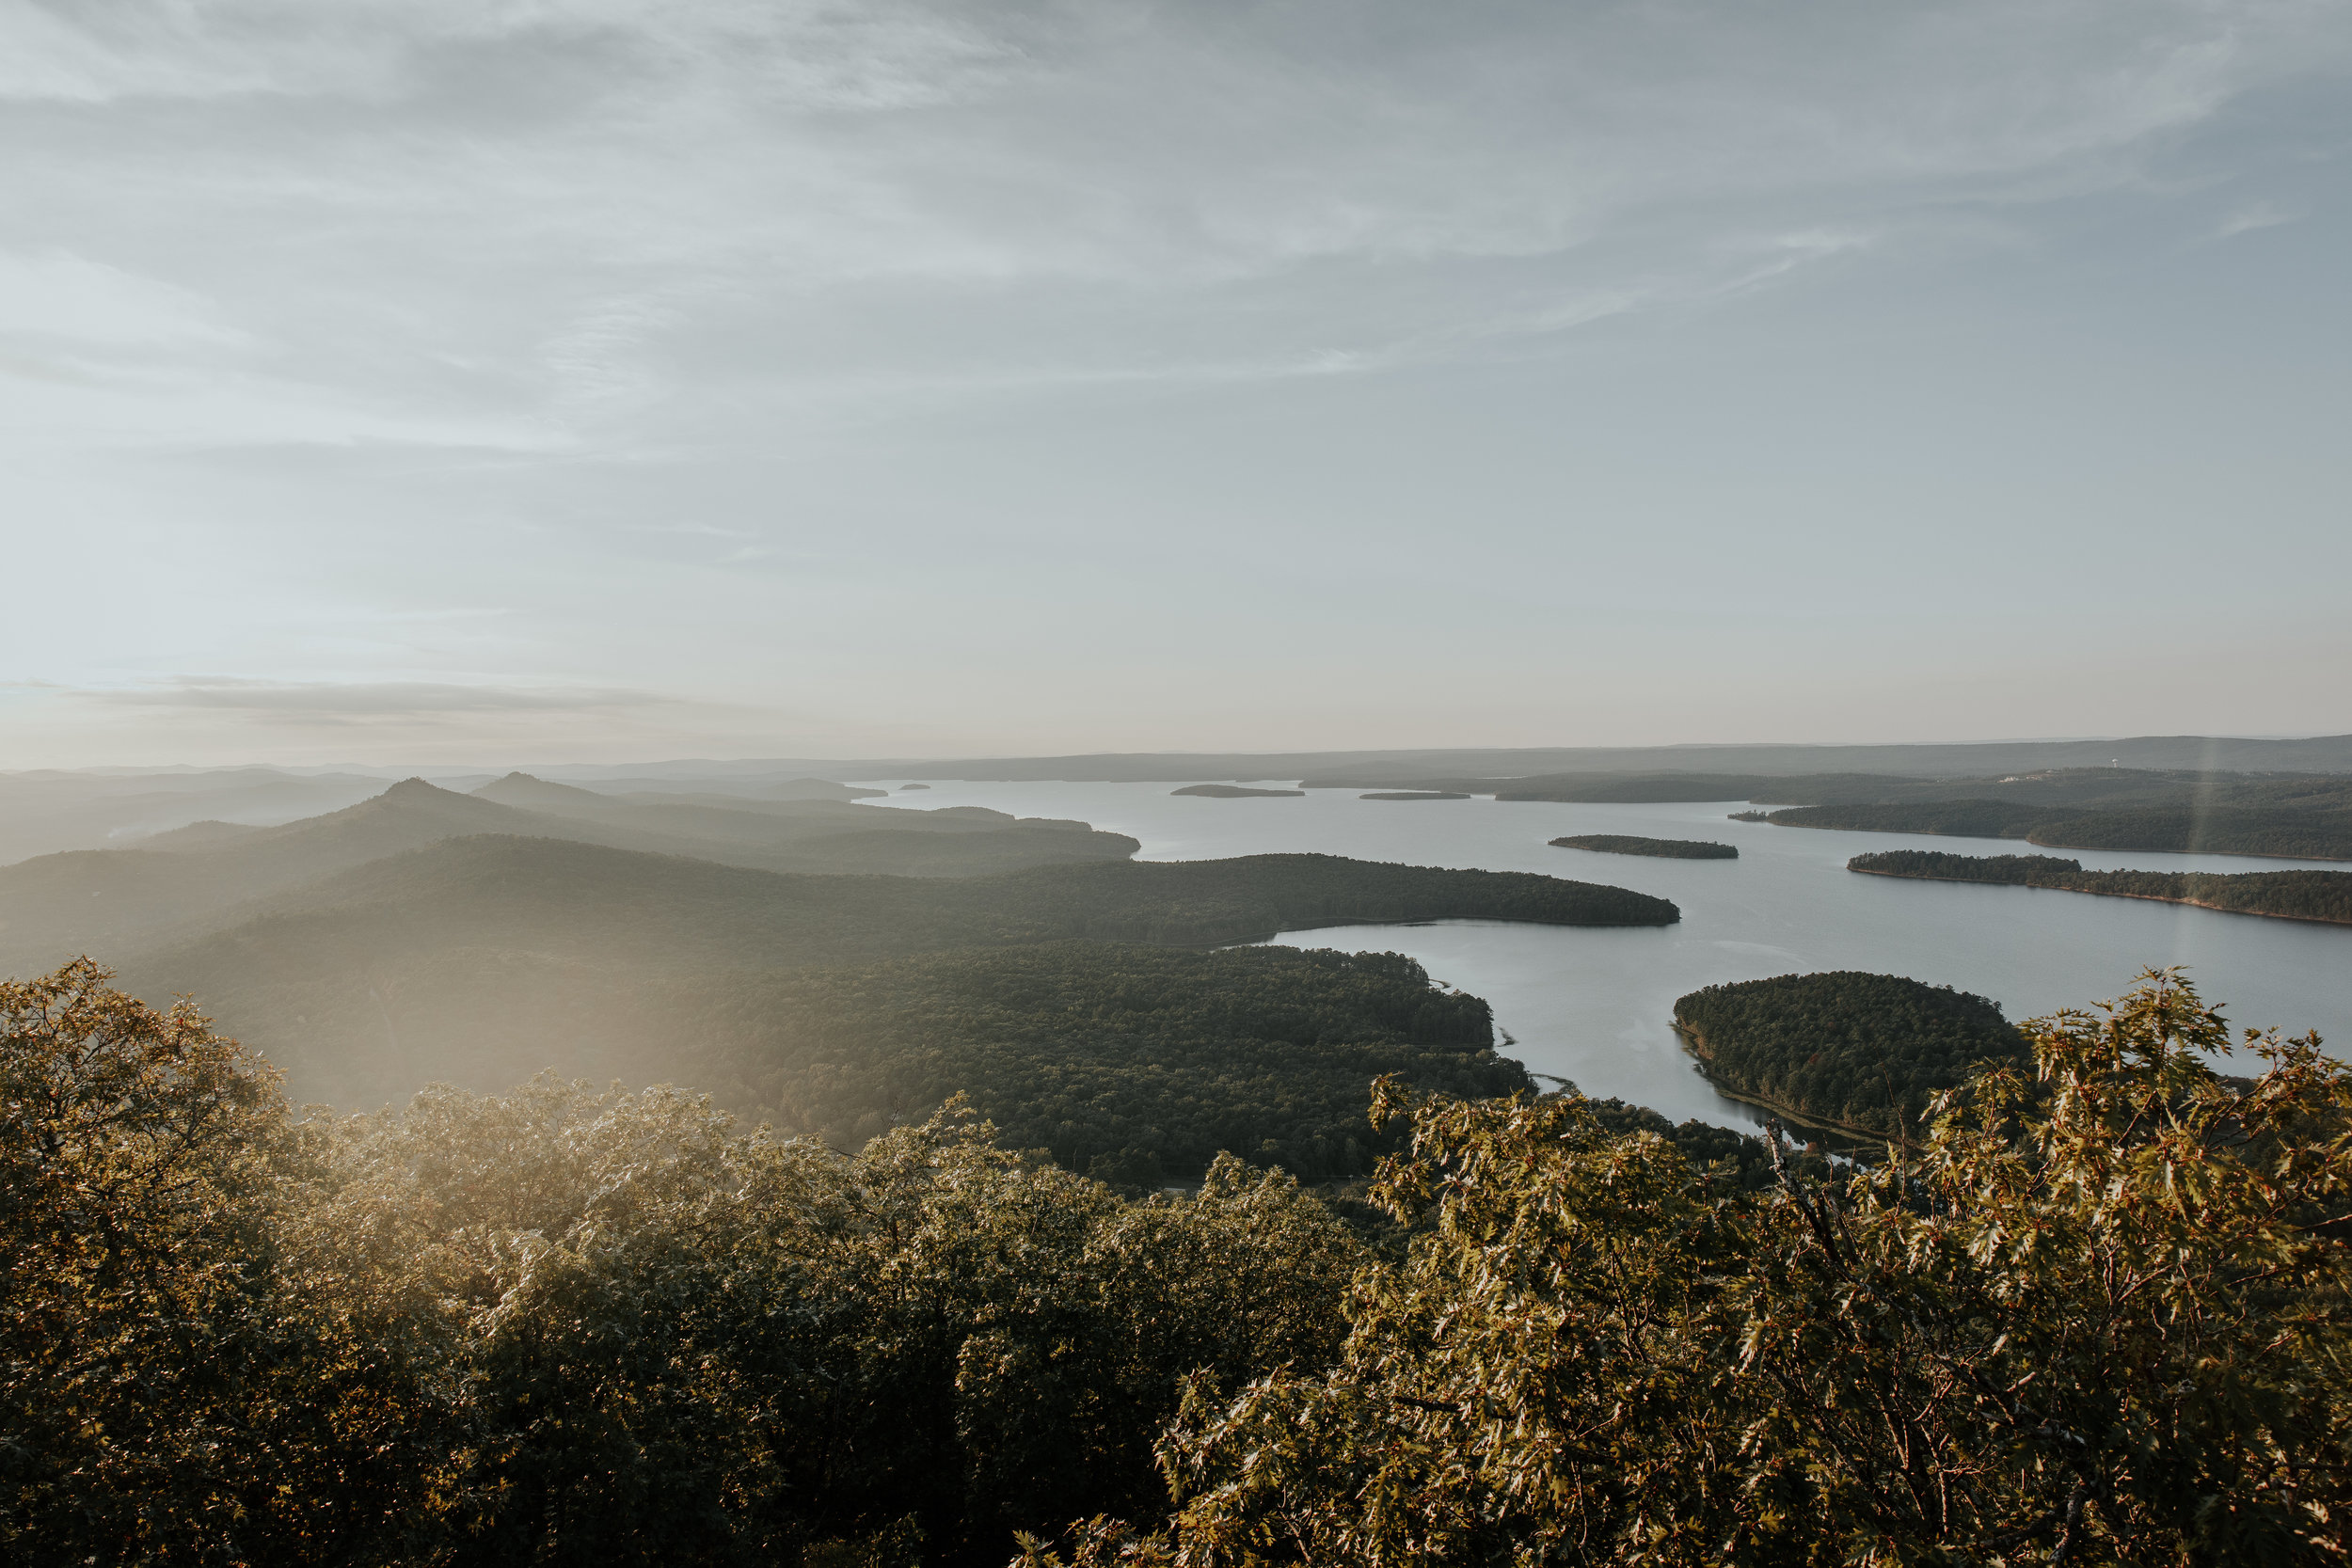 Summit of Pinnacle Mountain in Little Rock, Arkansas